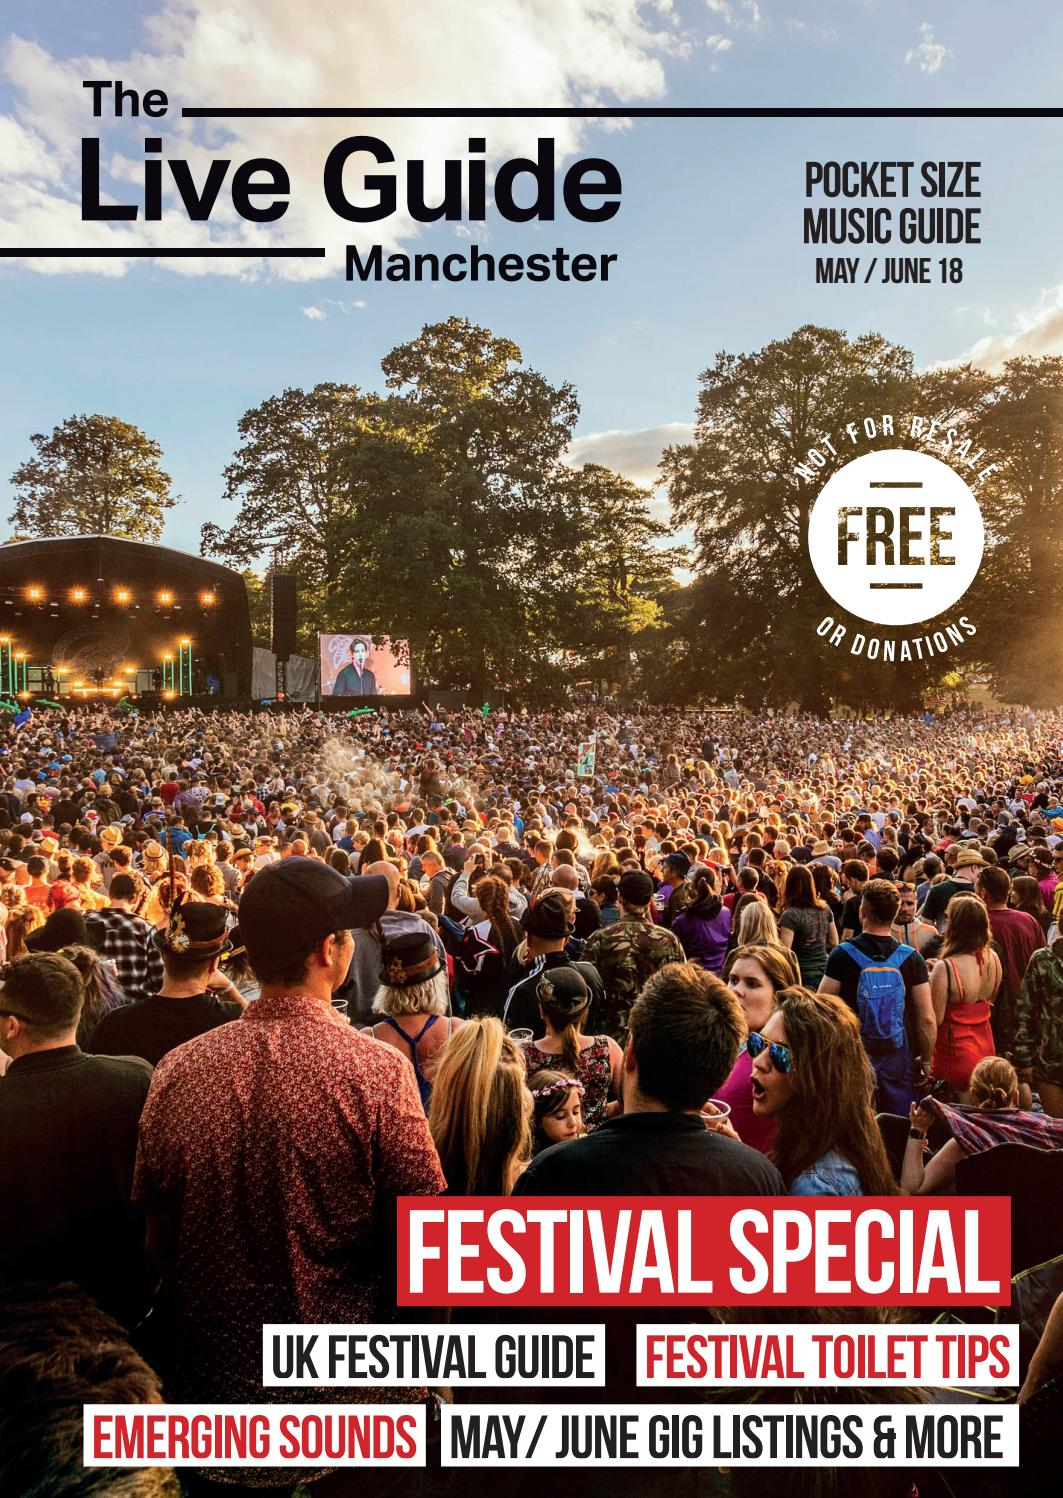 The Live Guide Manchester May / June 18 by The Live Guide